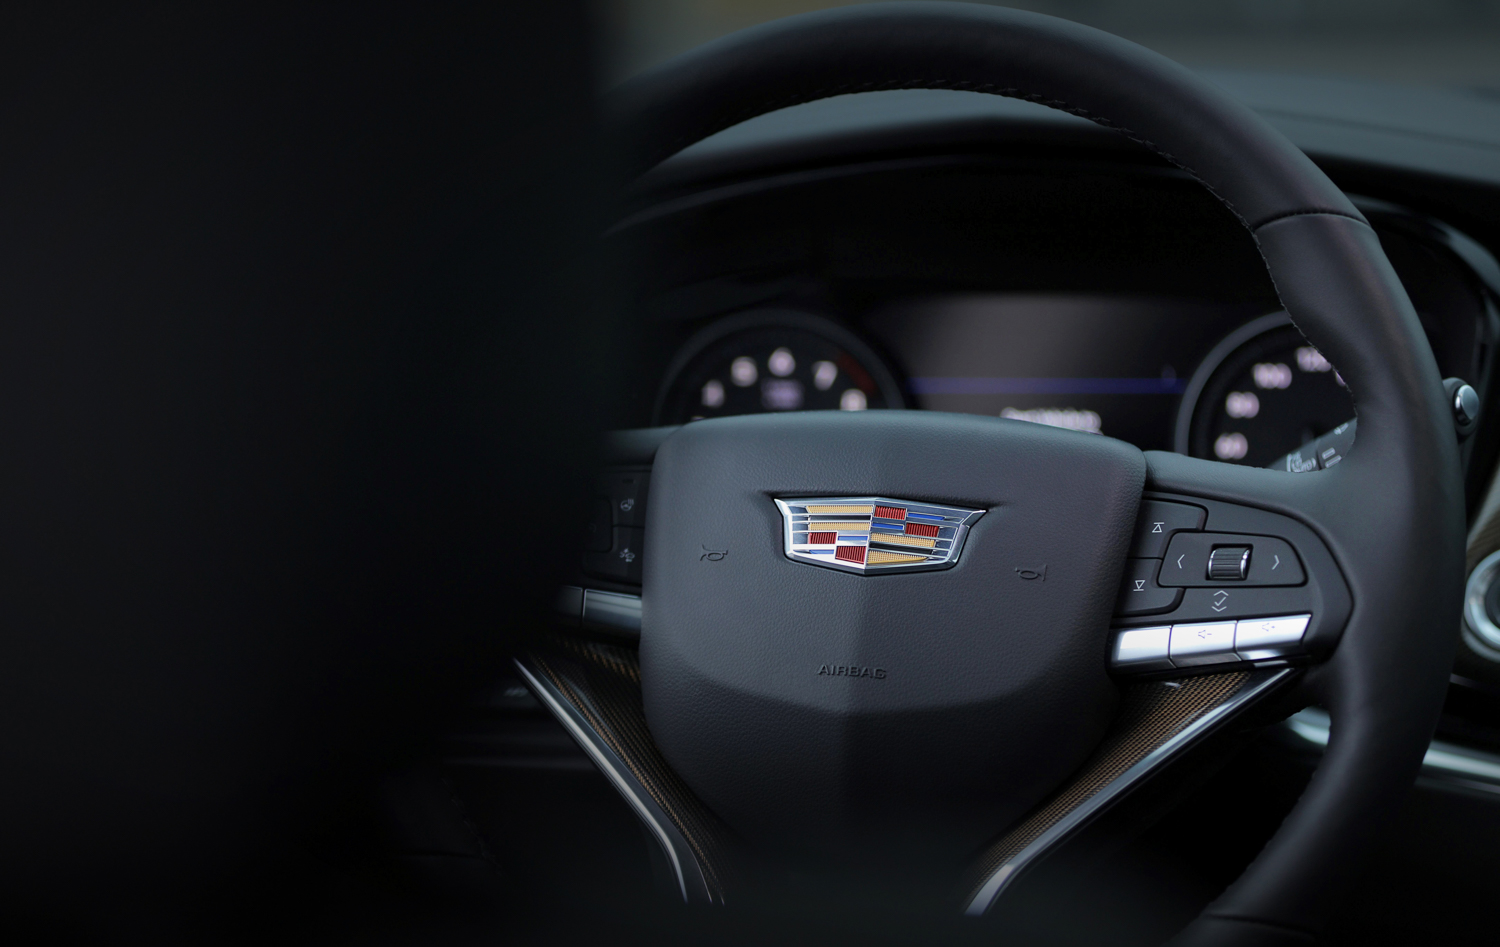 2020 Cadillac XT6 steering wheel